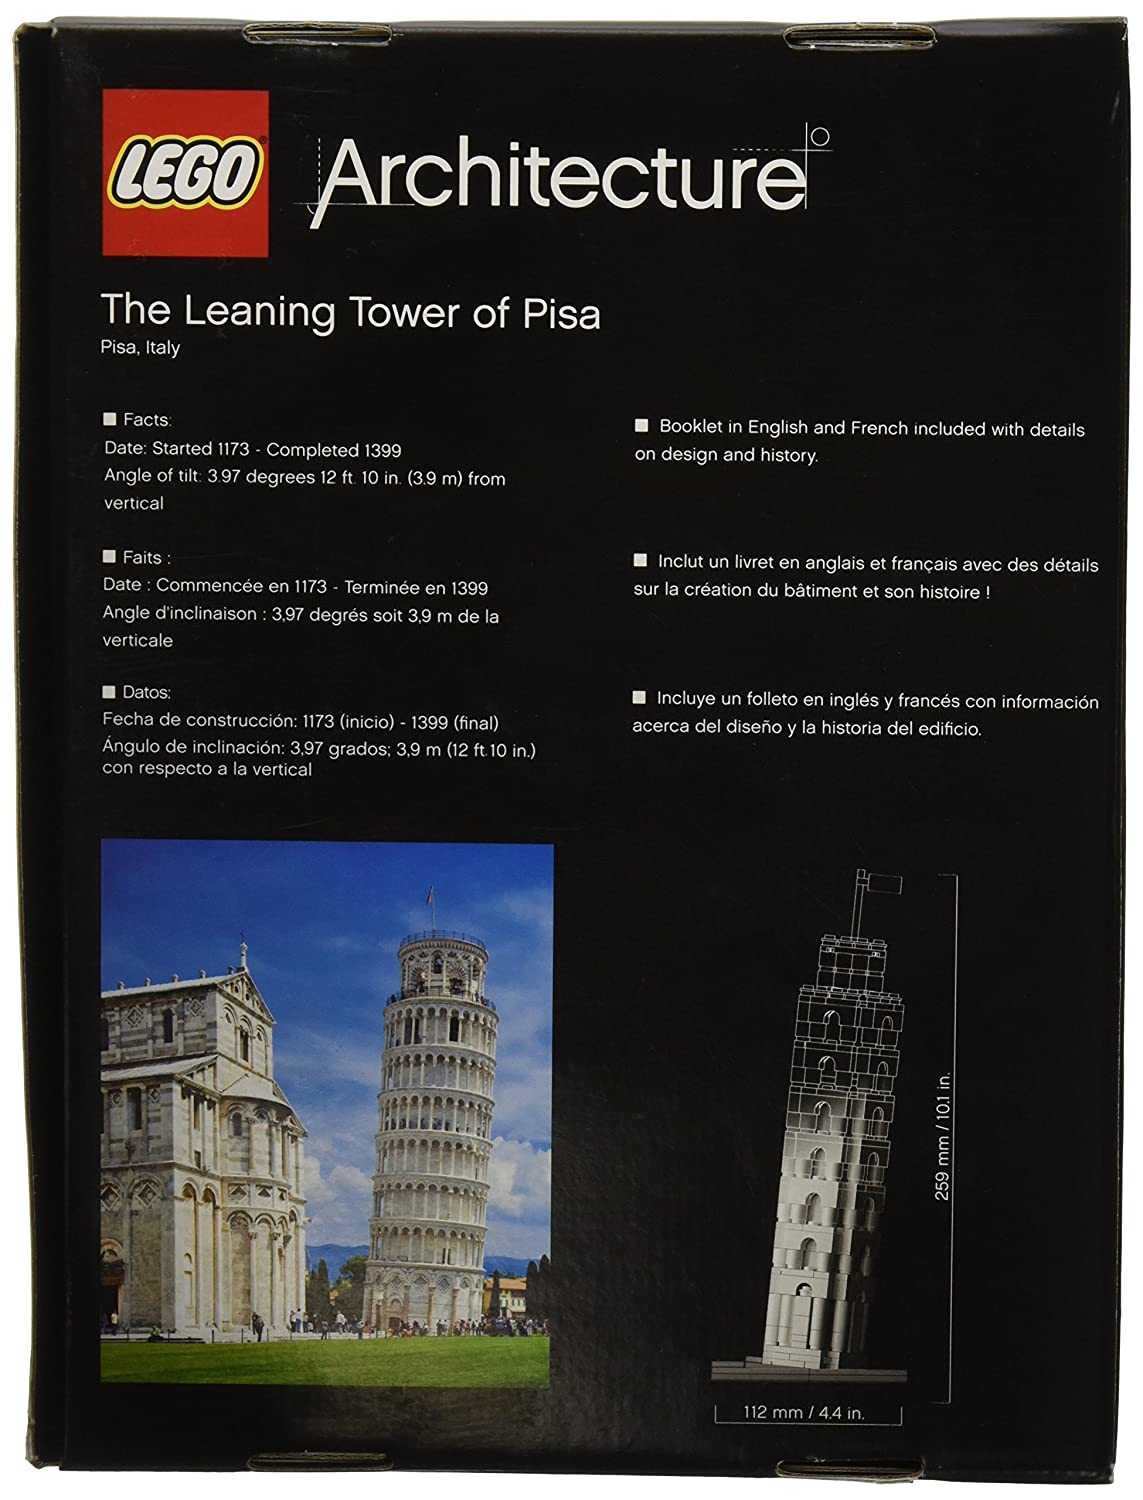 Amazon.com: LEGO Architecture The Leaning Tower of Pisa (Discontinued by  manufacturer): Toys & Games